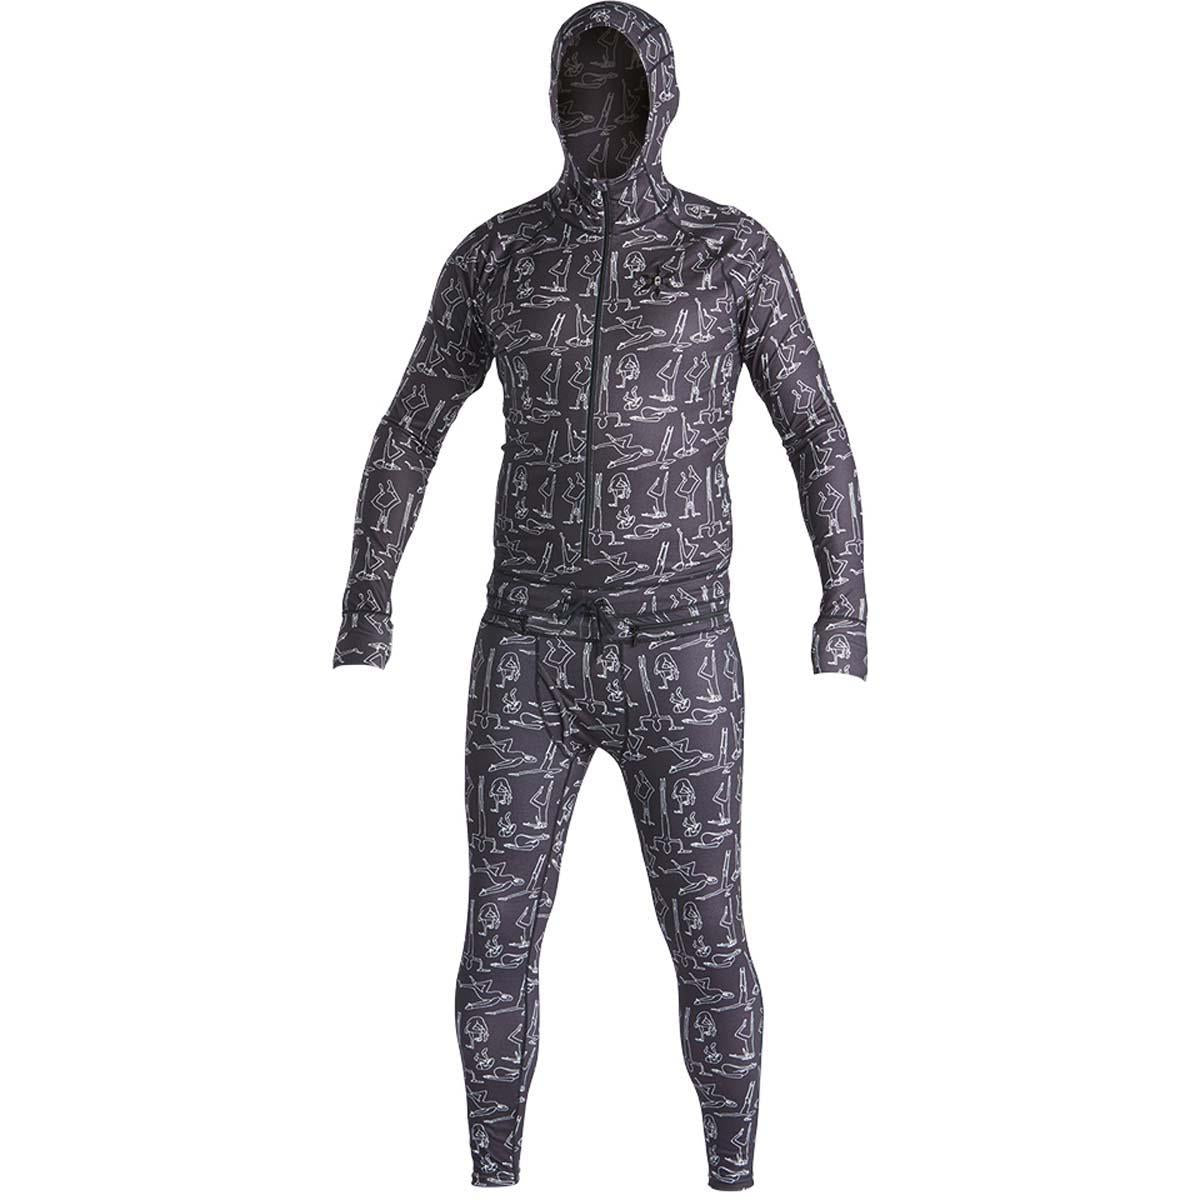 abmnj1-tpygs Airblaster Classic Ninja Suit tp yogis front